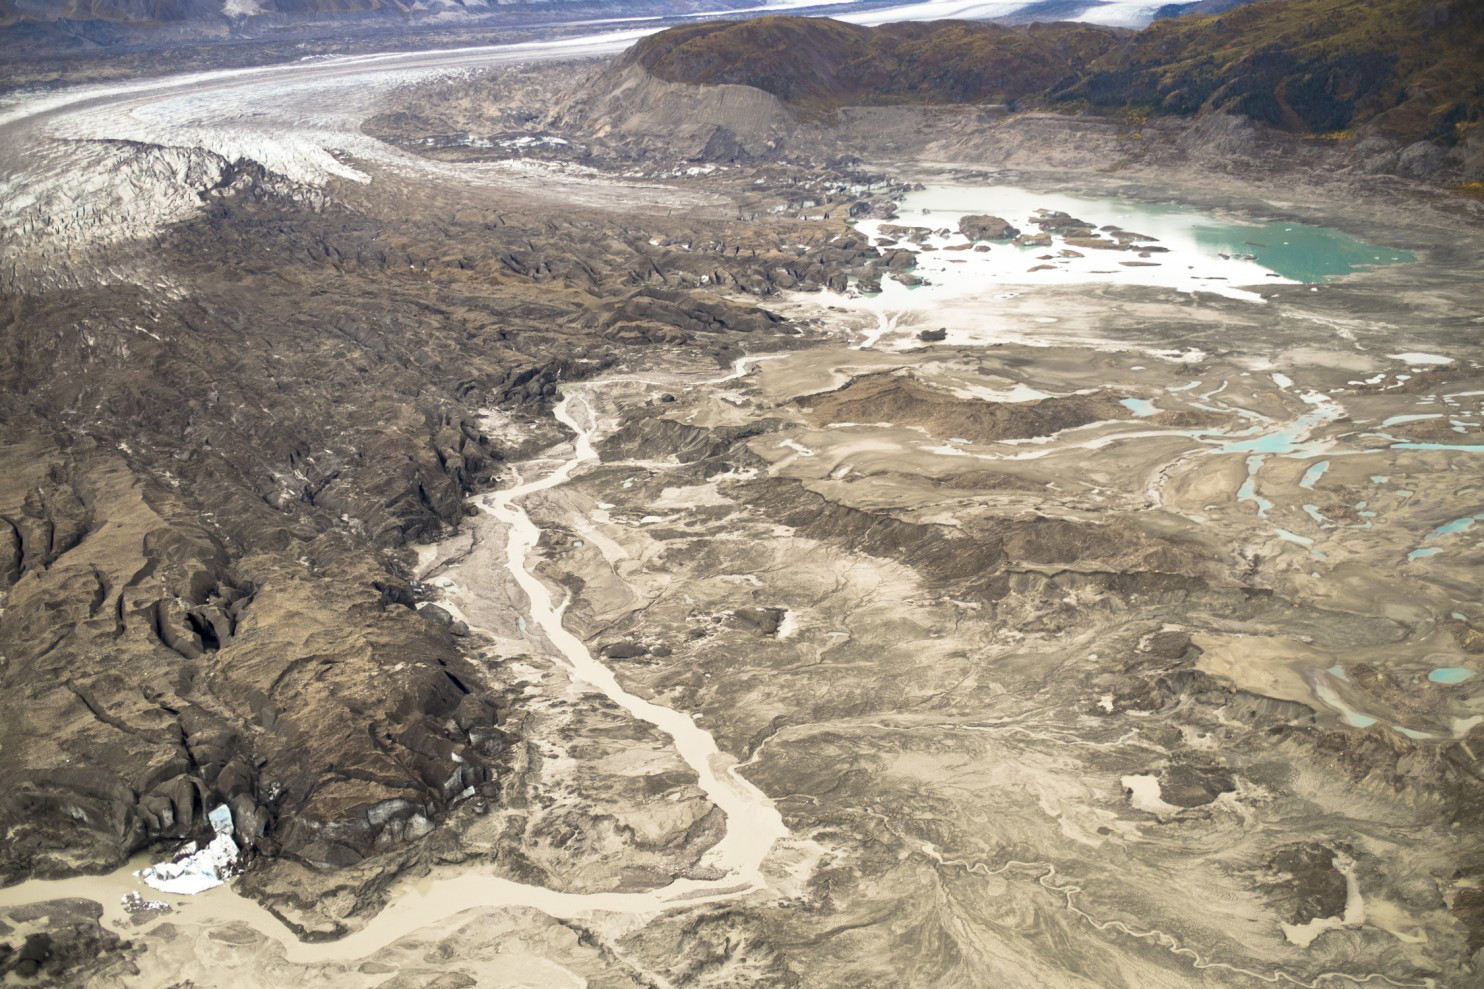 For the first time on record, human-caused climate change has rerouted an entire river